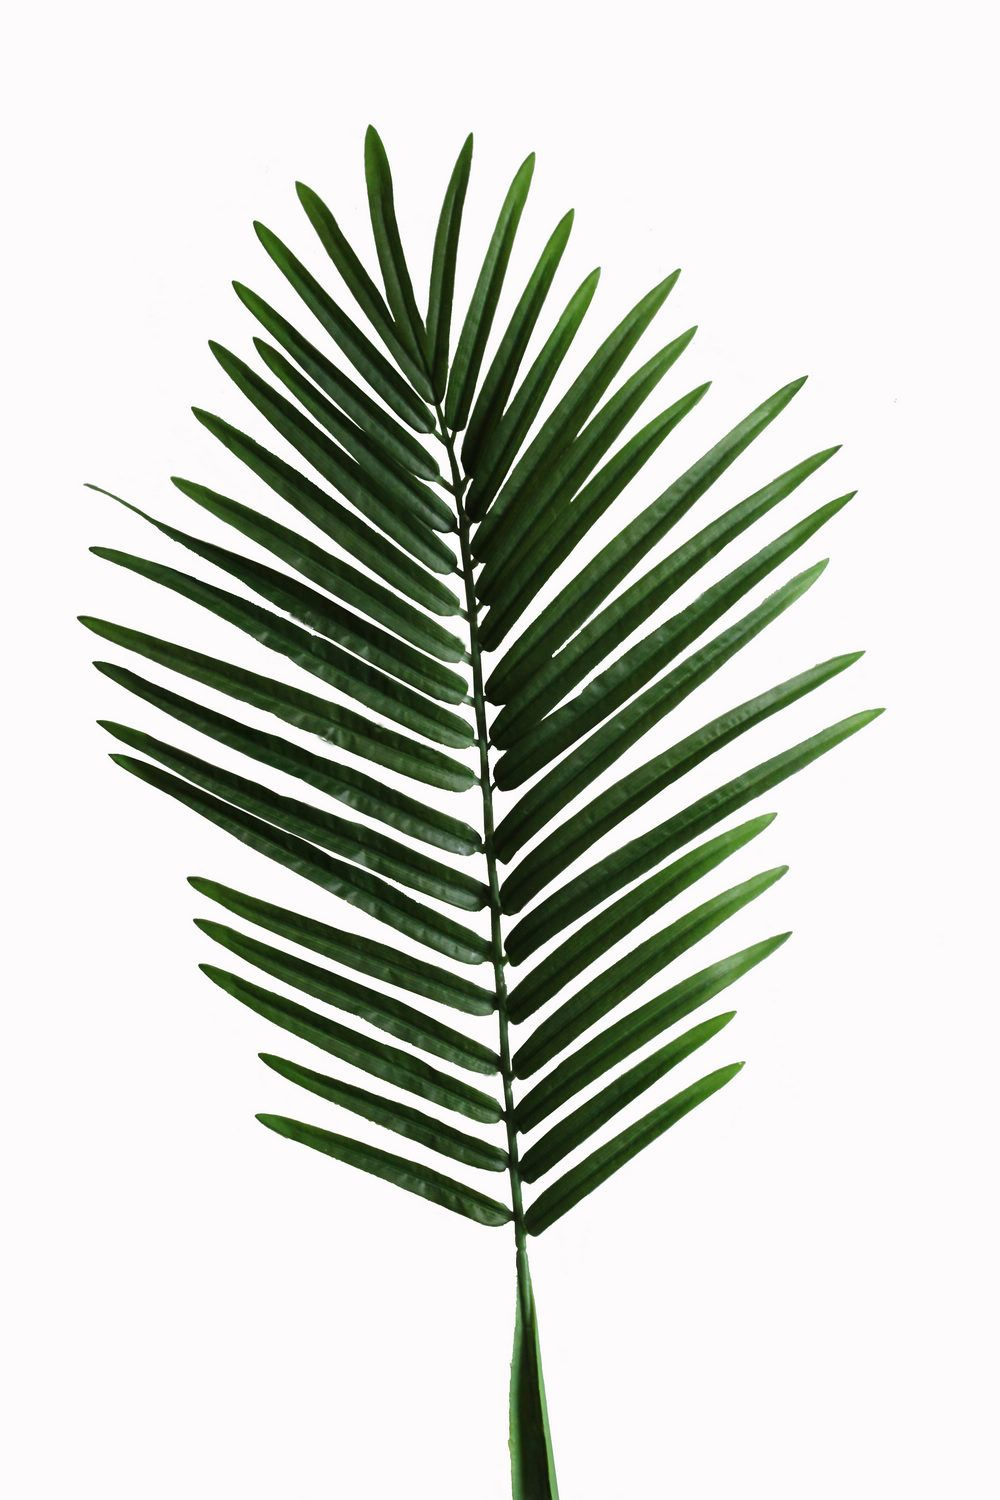 Artificial Leaf Palm Tree Palm Leaves Palm Spray Jtle 001 Jpg 1000 1500 Pixels Tropical Leaves Modern Tropical Leaves Juicy tropical leaves watercolor set of 59 files. pinterest